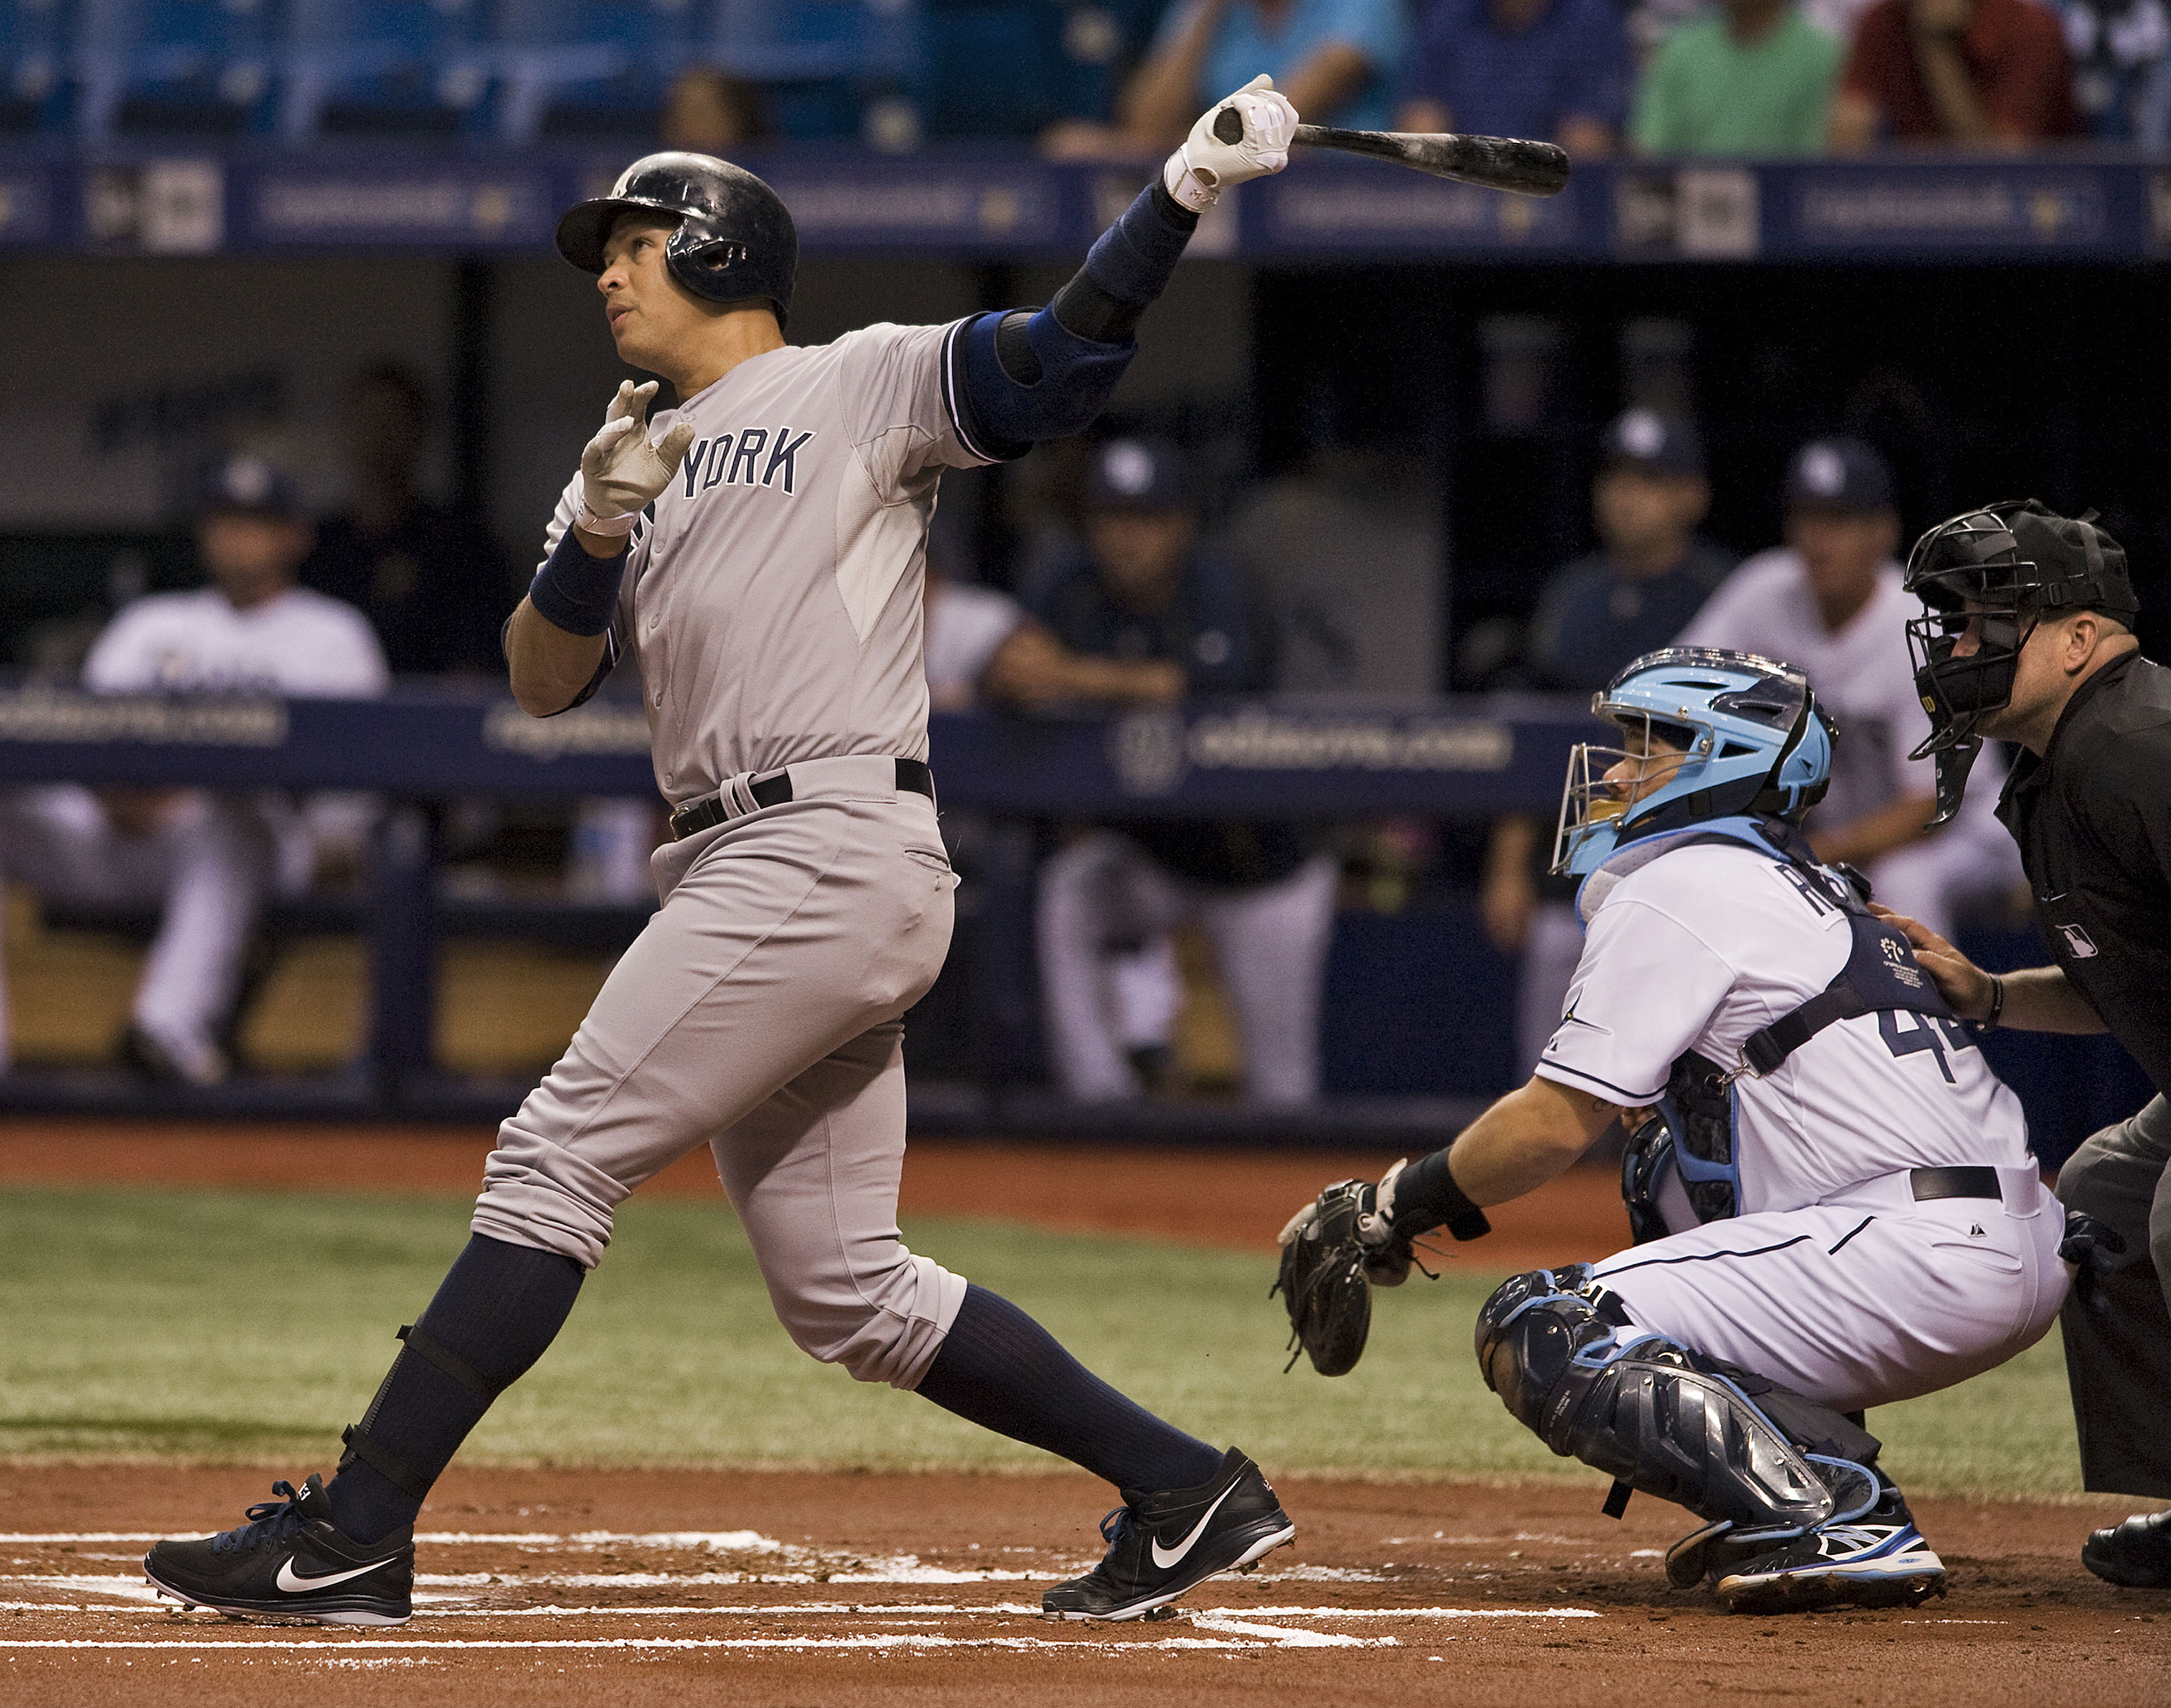 Tampa Bay Rays catcher Rene Rivera, center, and home plate umpire Adam Hamari, right, look on as New York Yankees designated hitter Alex Rodriguez hits a solo home run off Tampa Bay starter Alex Colome during the first inning of a baseball game Monday, Ma